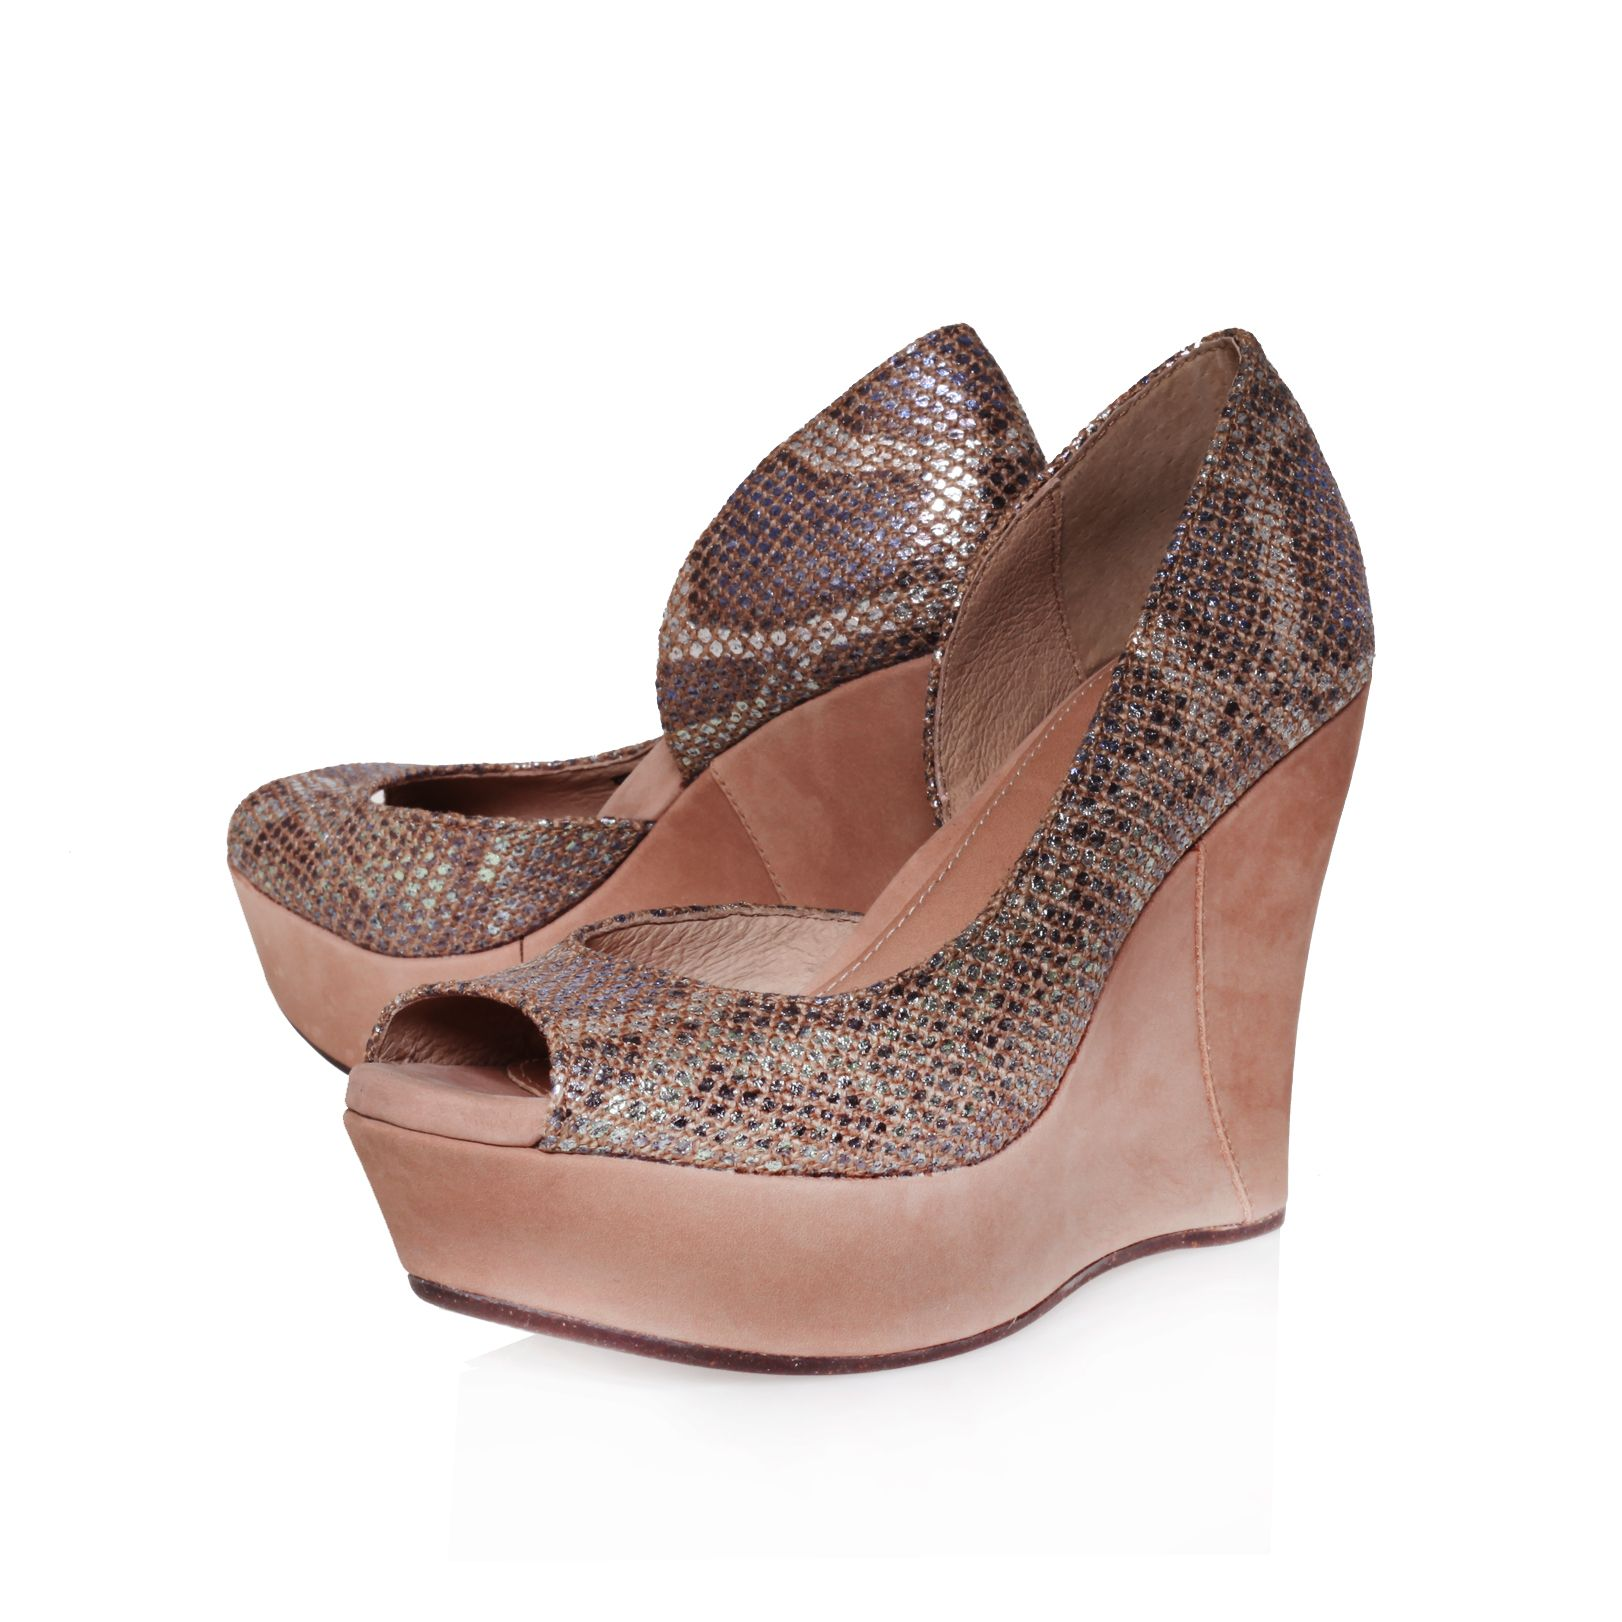 ugg toura wedge court shoes in animal beige lyst